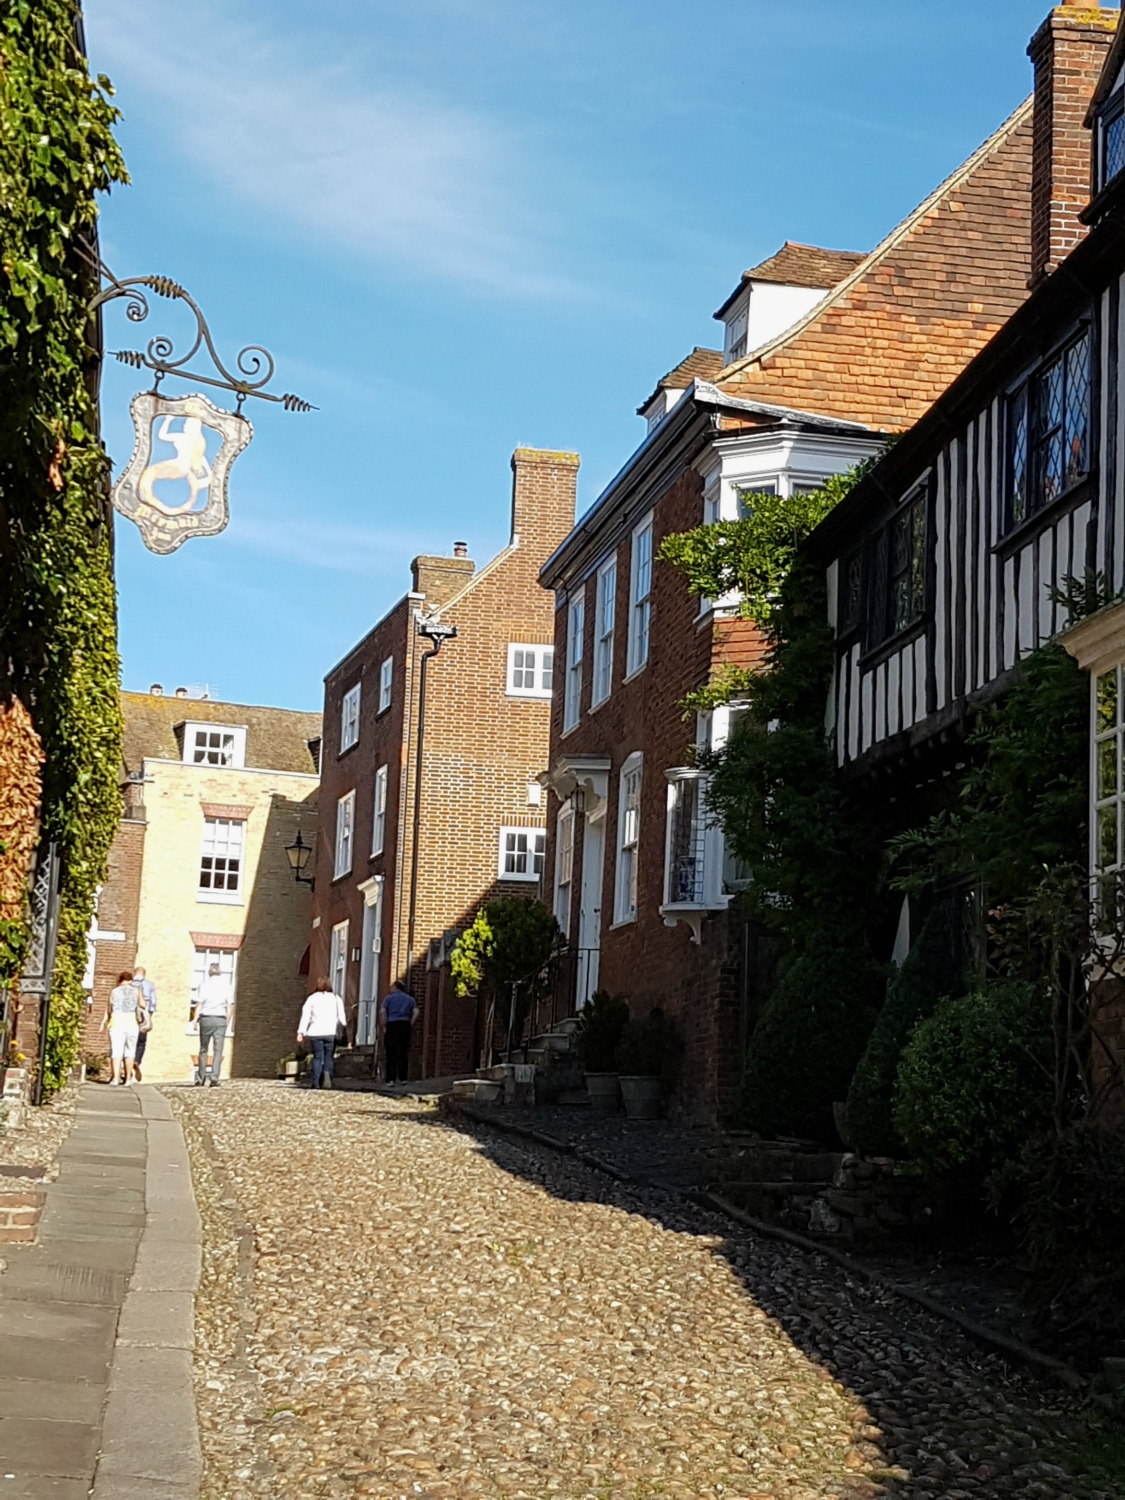 A street in historic Rye, East Sussex - spending a weekend in East Sussex with my daughter before the start of school, to explore the history and coastline